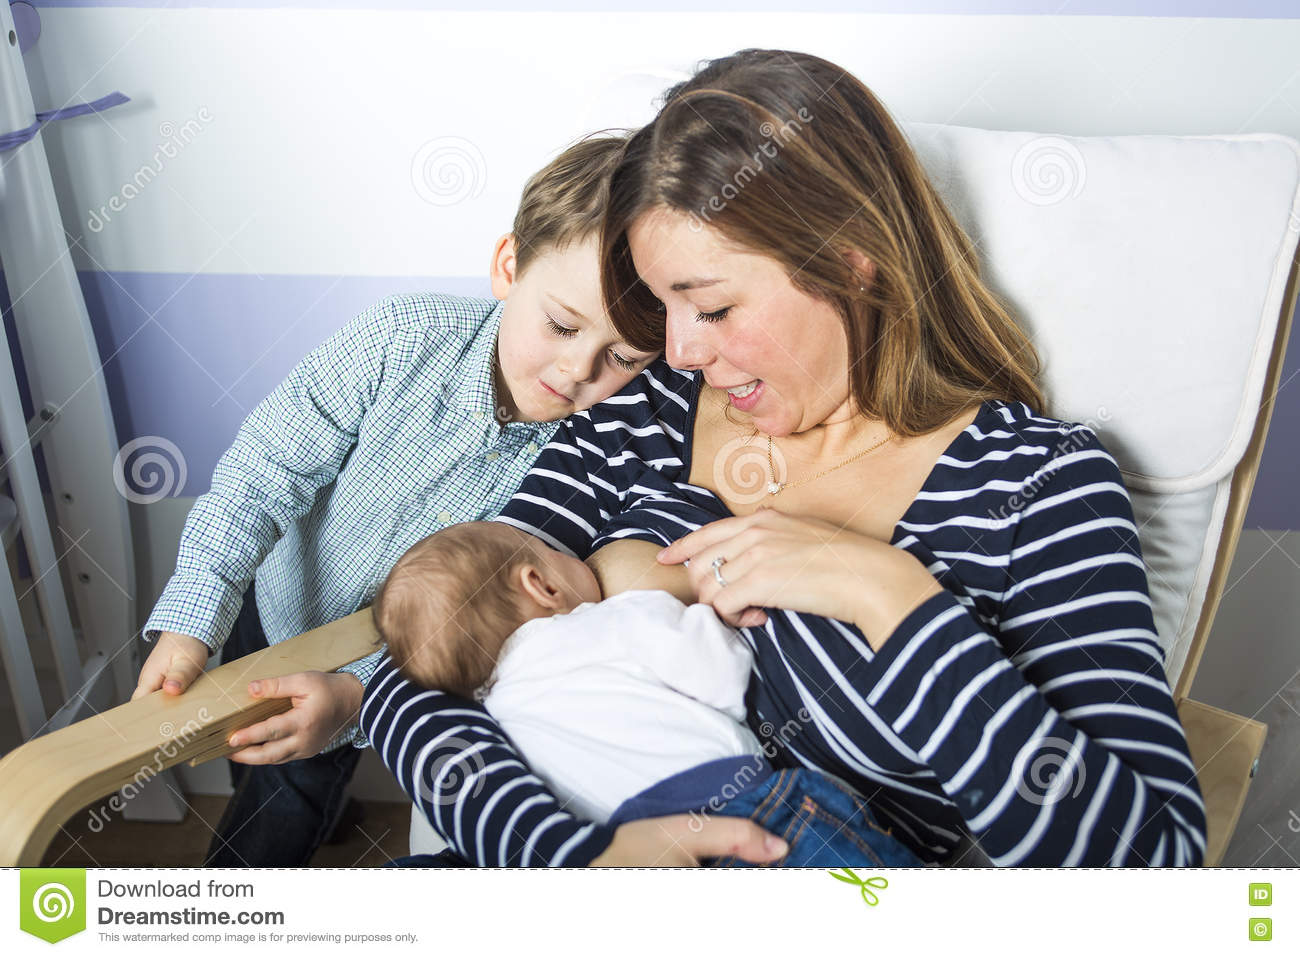 Download Young Mother Feeding Her Newborn Child. Stock Photo - Image of daughter, mother: 74575344